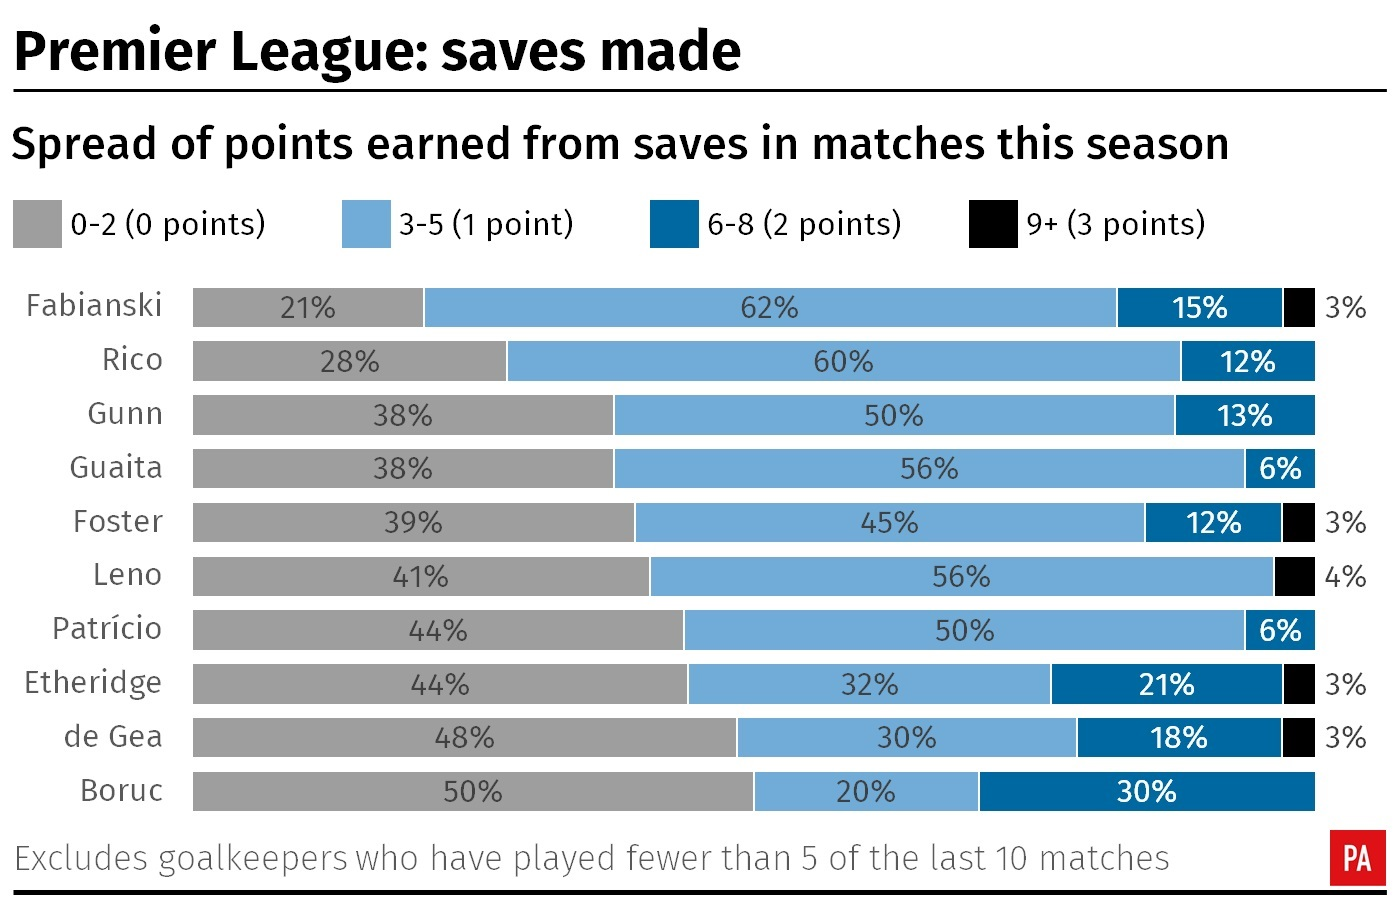 A graphic showing the spread of Fantasy Premier League points earned from saves by goalkeepers in matches this season